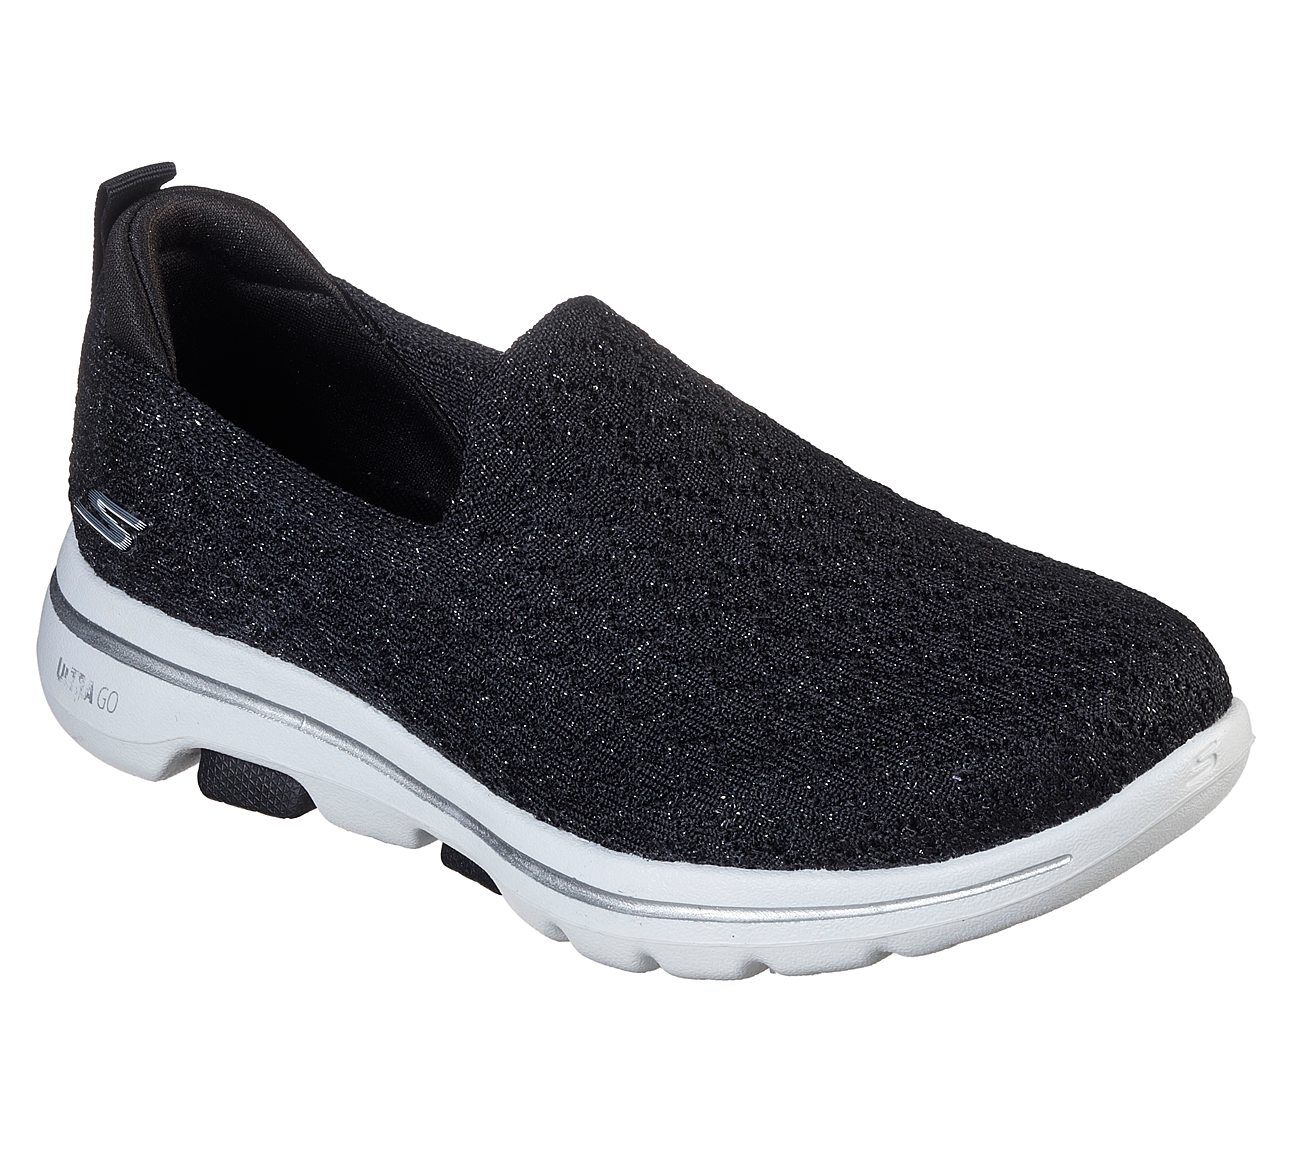 skechers sock shoes reviews